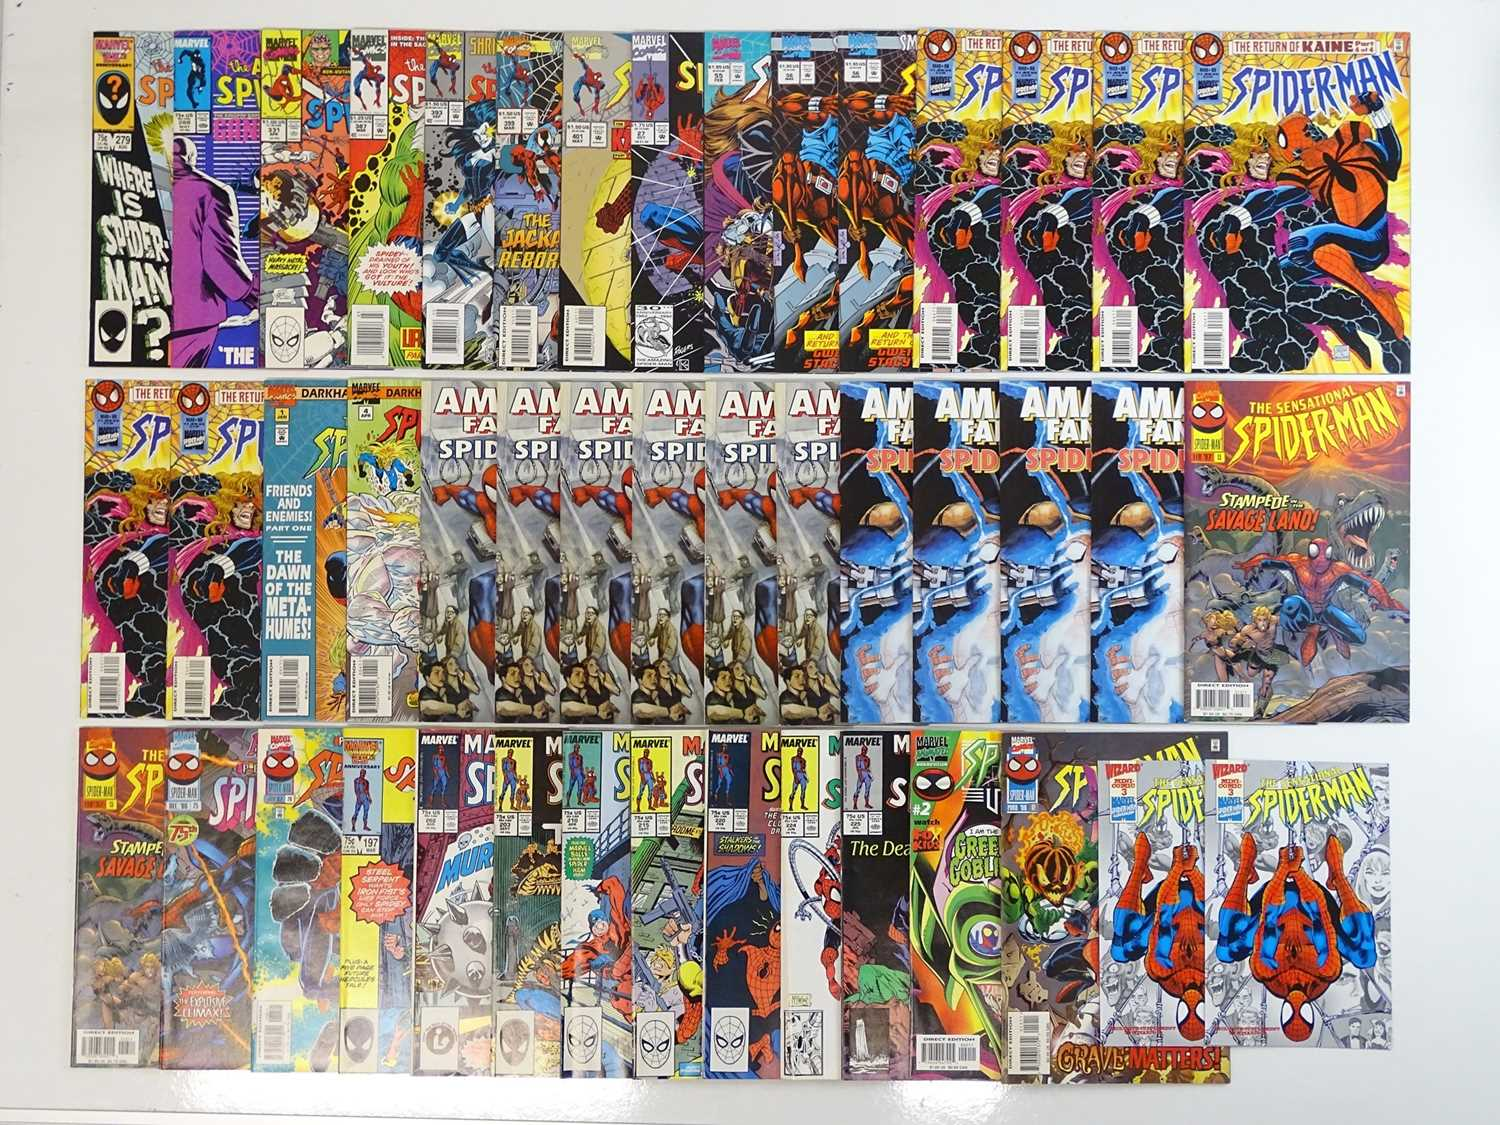 SPIDER-MAN LOT - (45 in Lot) - (MARVEL) - Includes AMAZING SPIDER-MAN (1986/95) #279, 288, 331, 387,